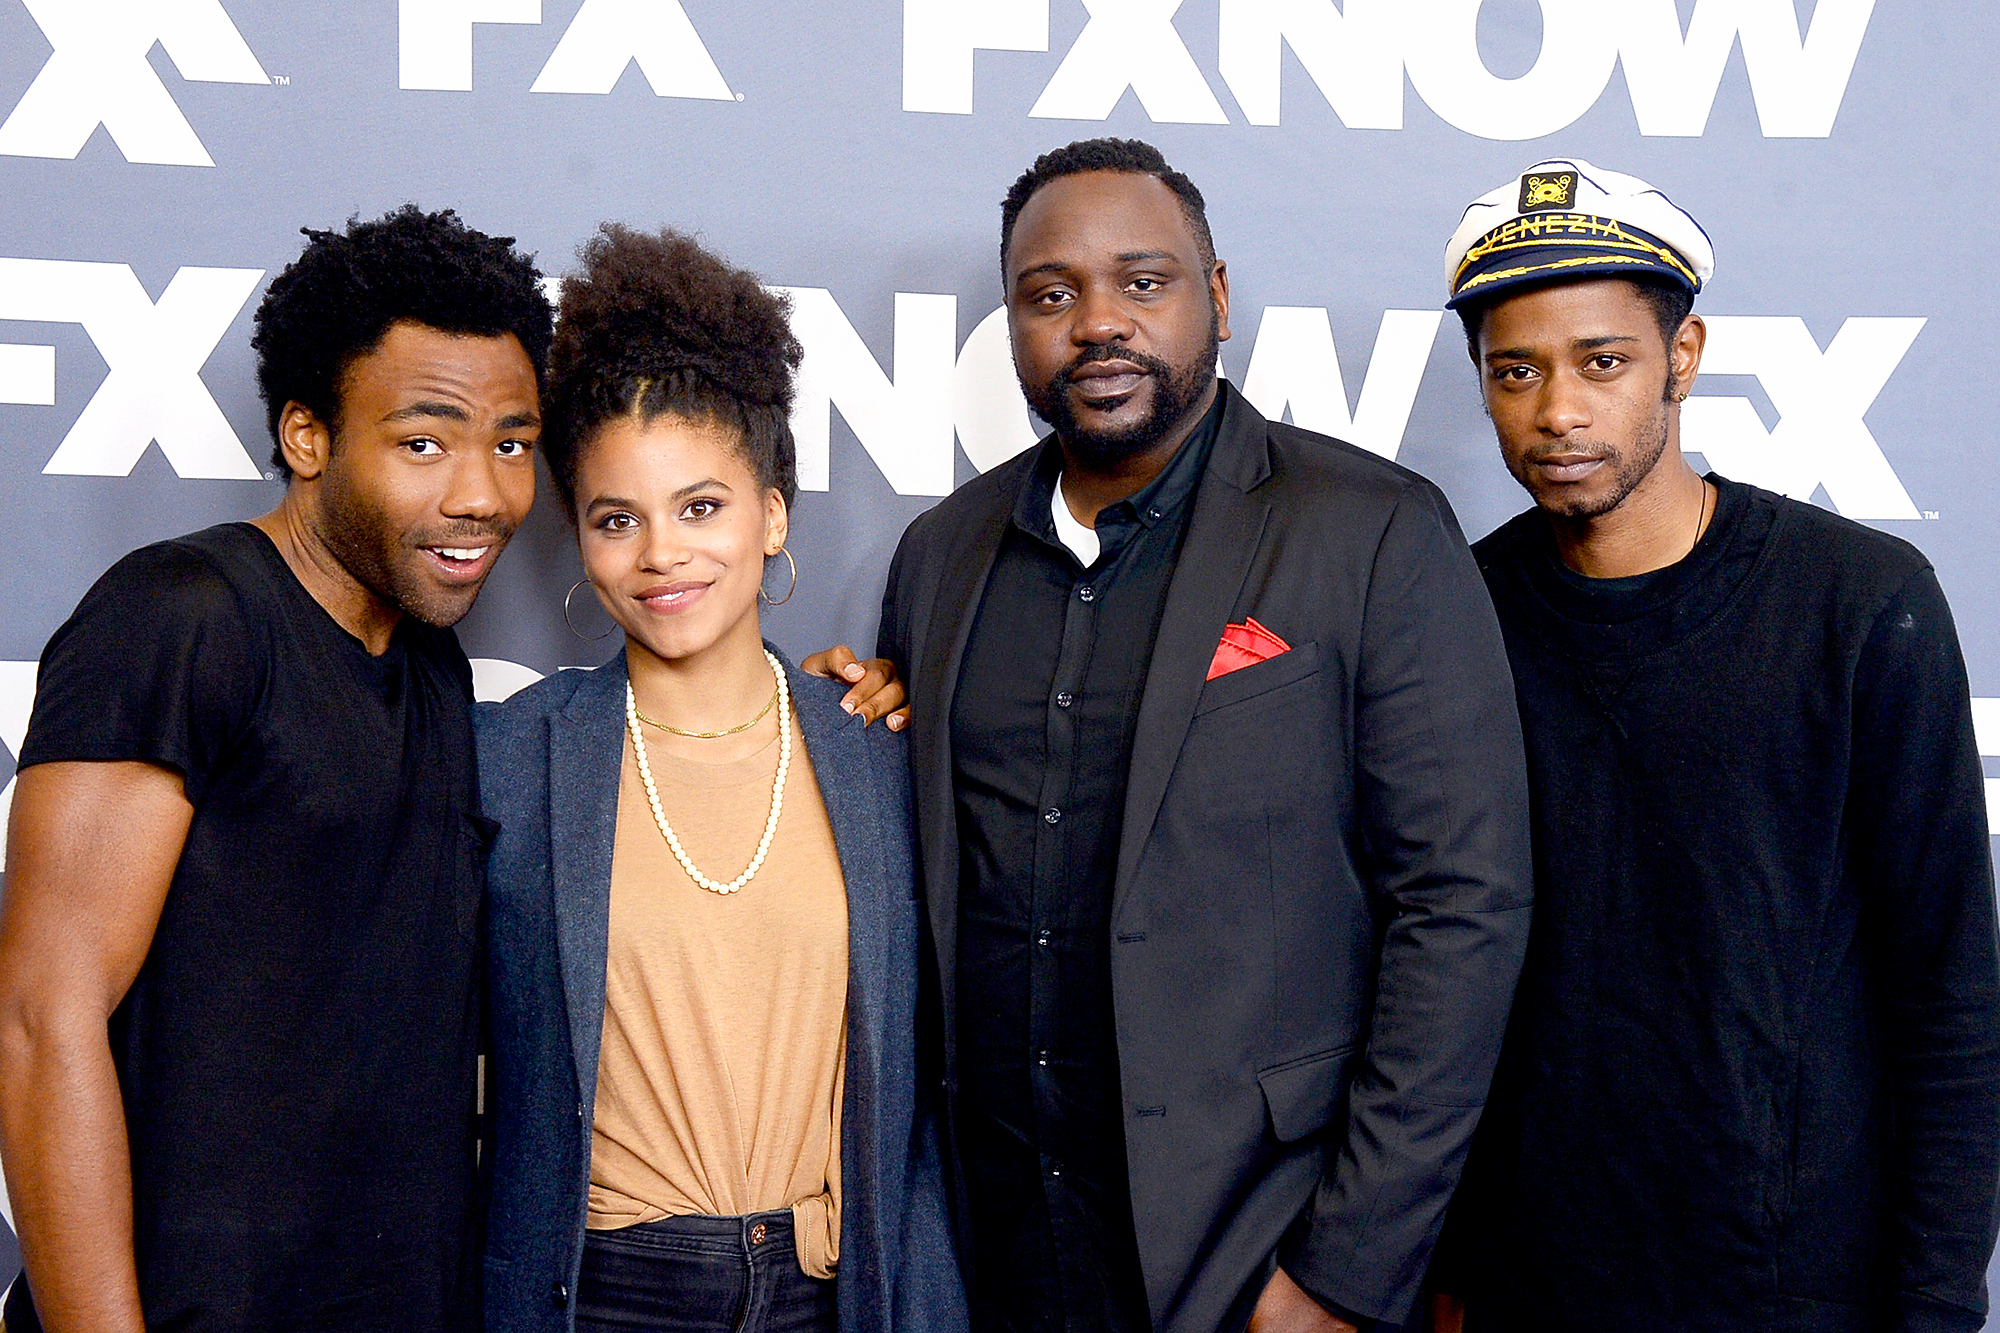 Donald Glover, Zazie Beetz, Brian Tyree Henry and Keith Stanfield